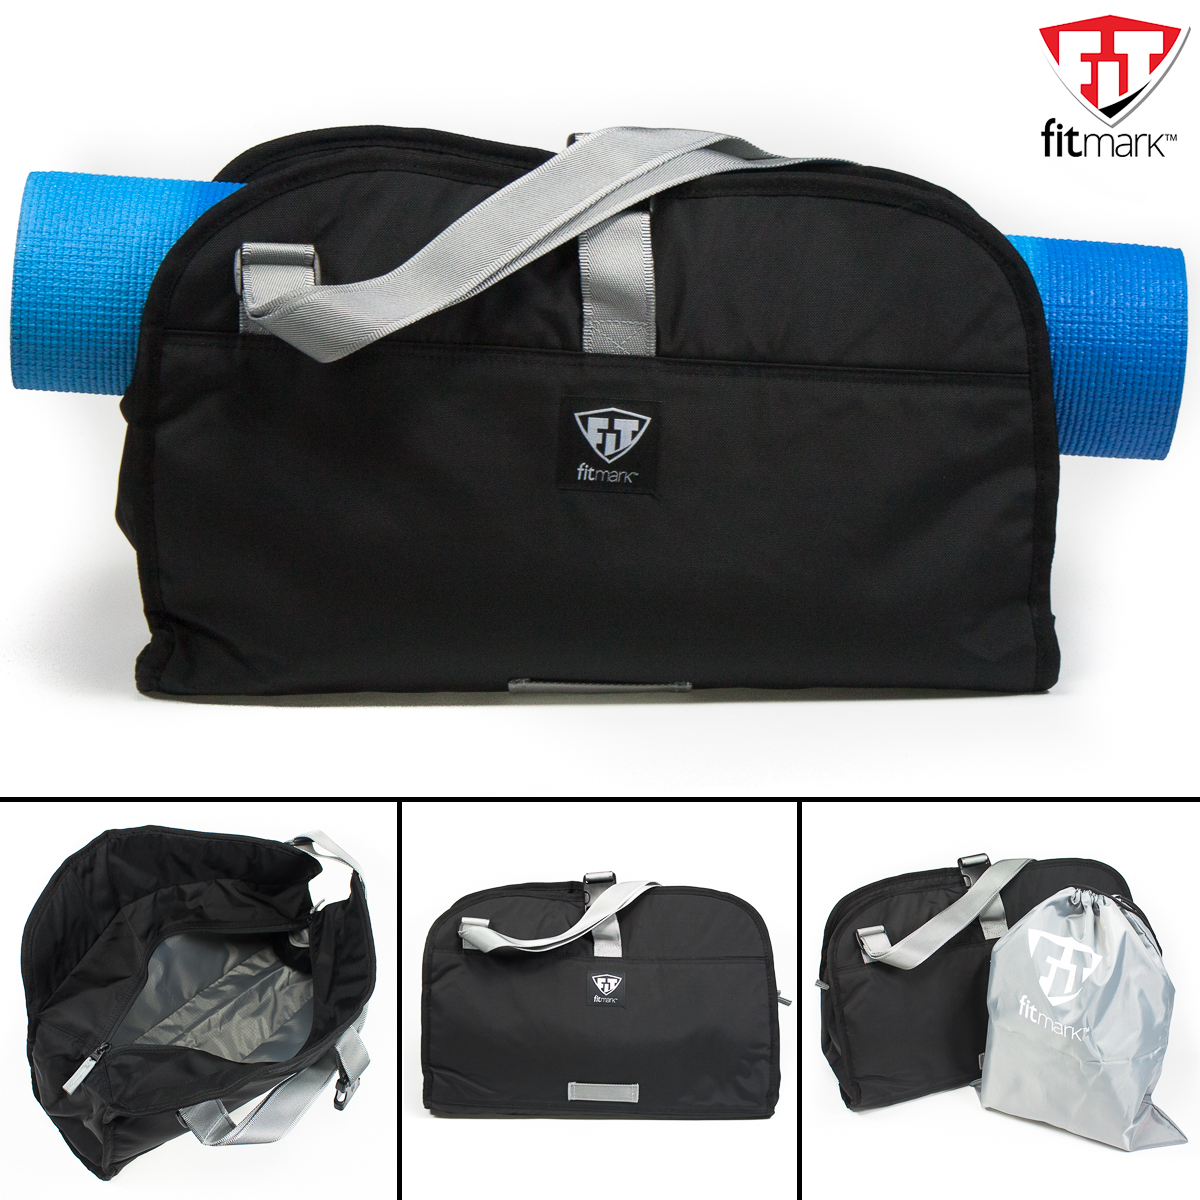 Fitmark Namaste Tote Gym Yoga Crossbody Messenger Duffle Black +Laundry Shoe Bag by